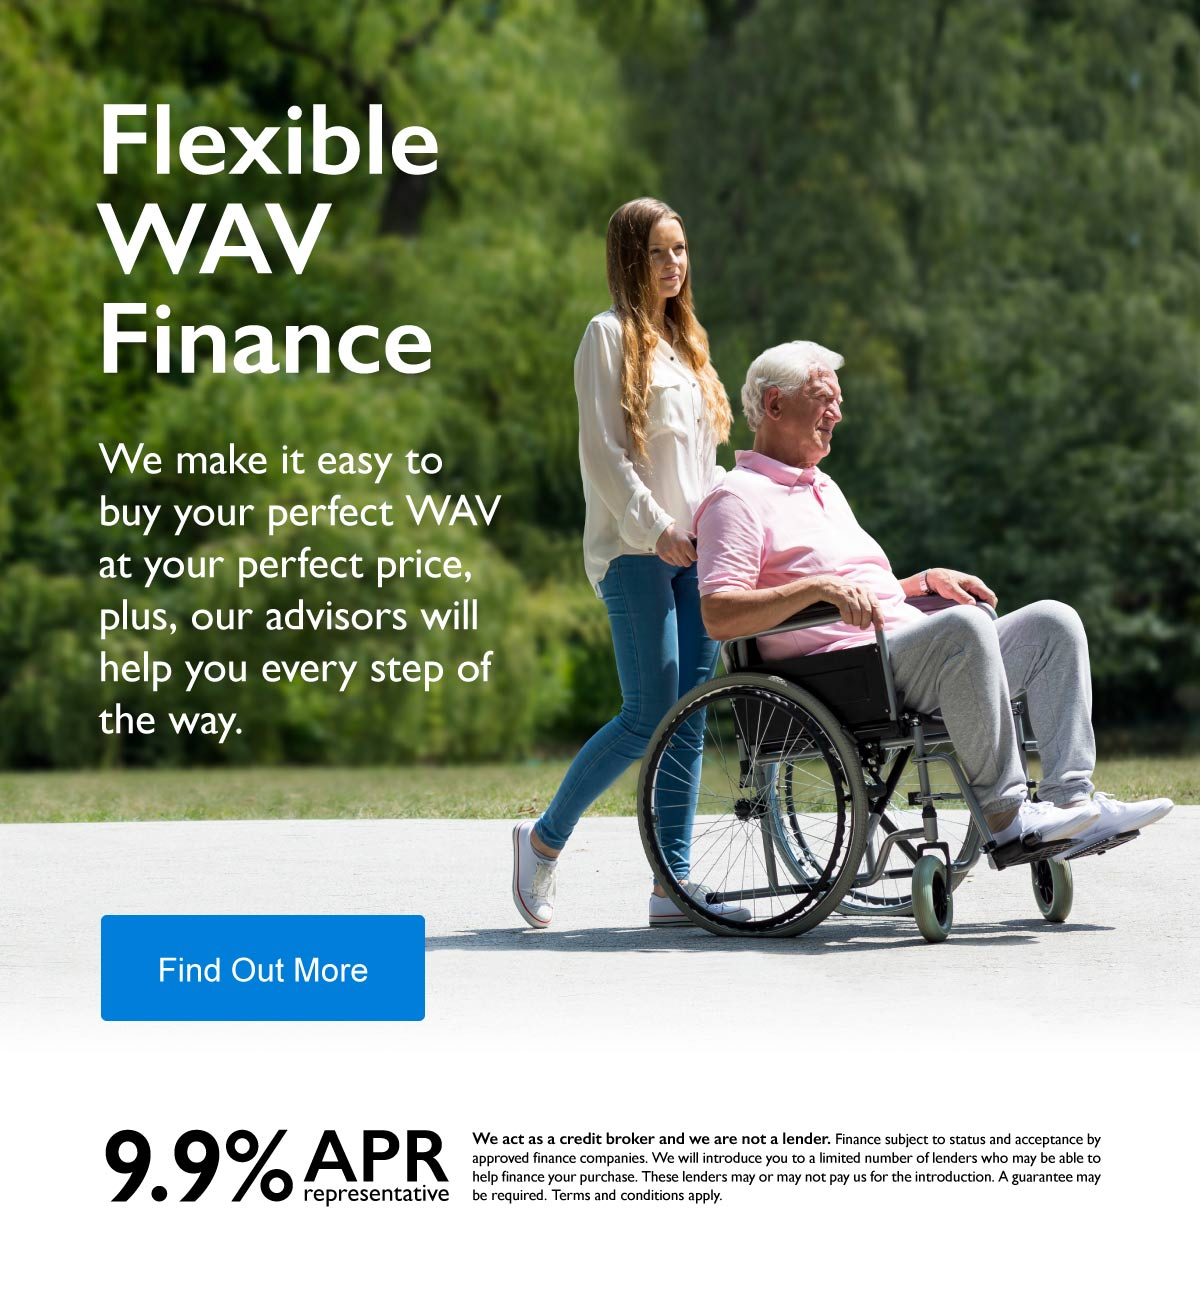 Flexible WAV finance 100519